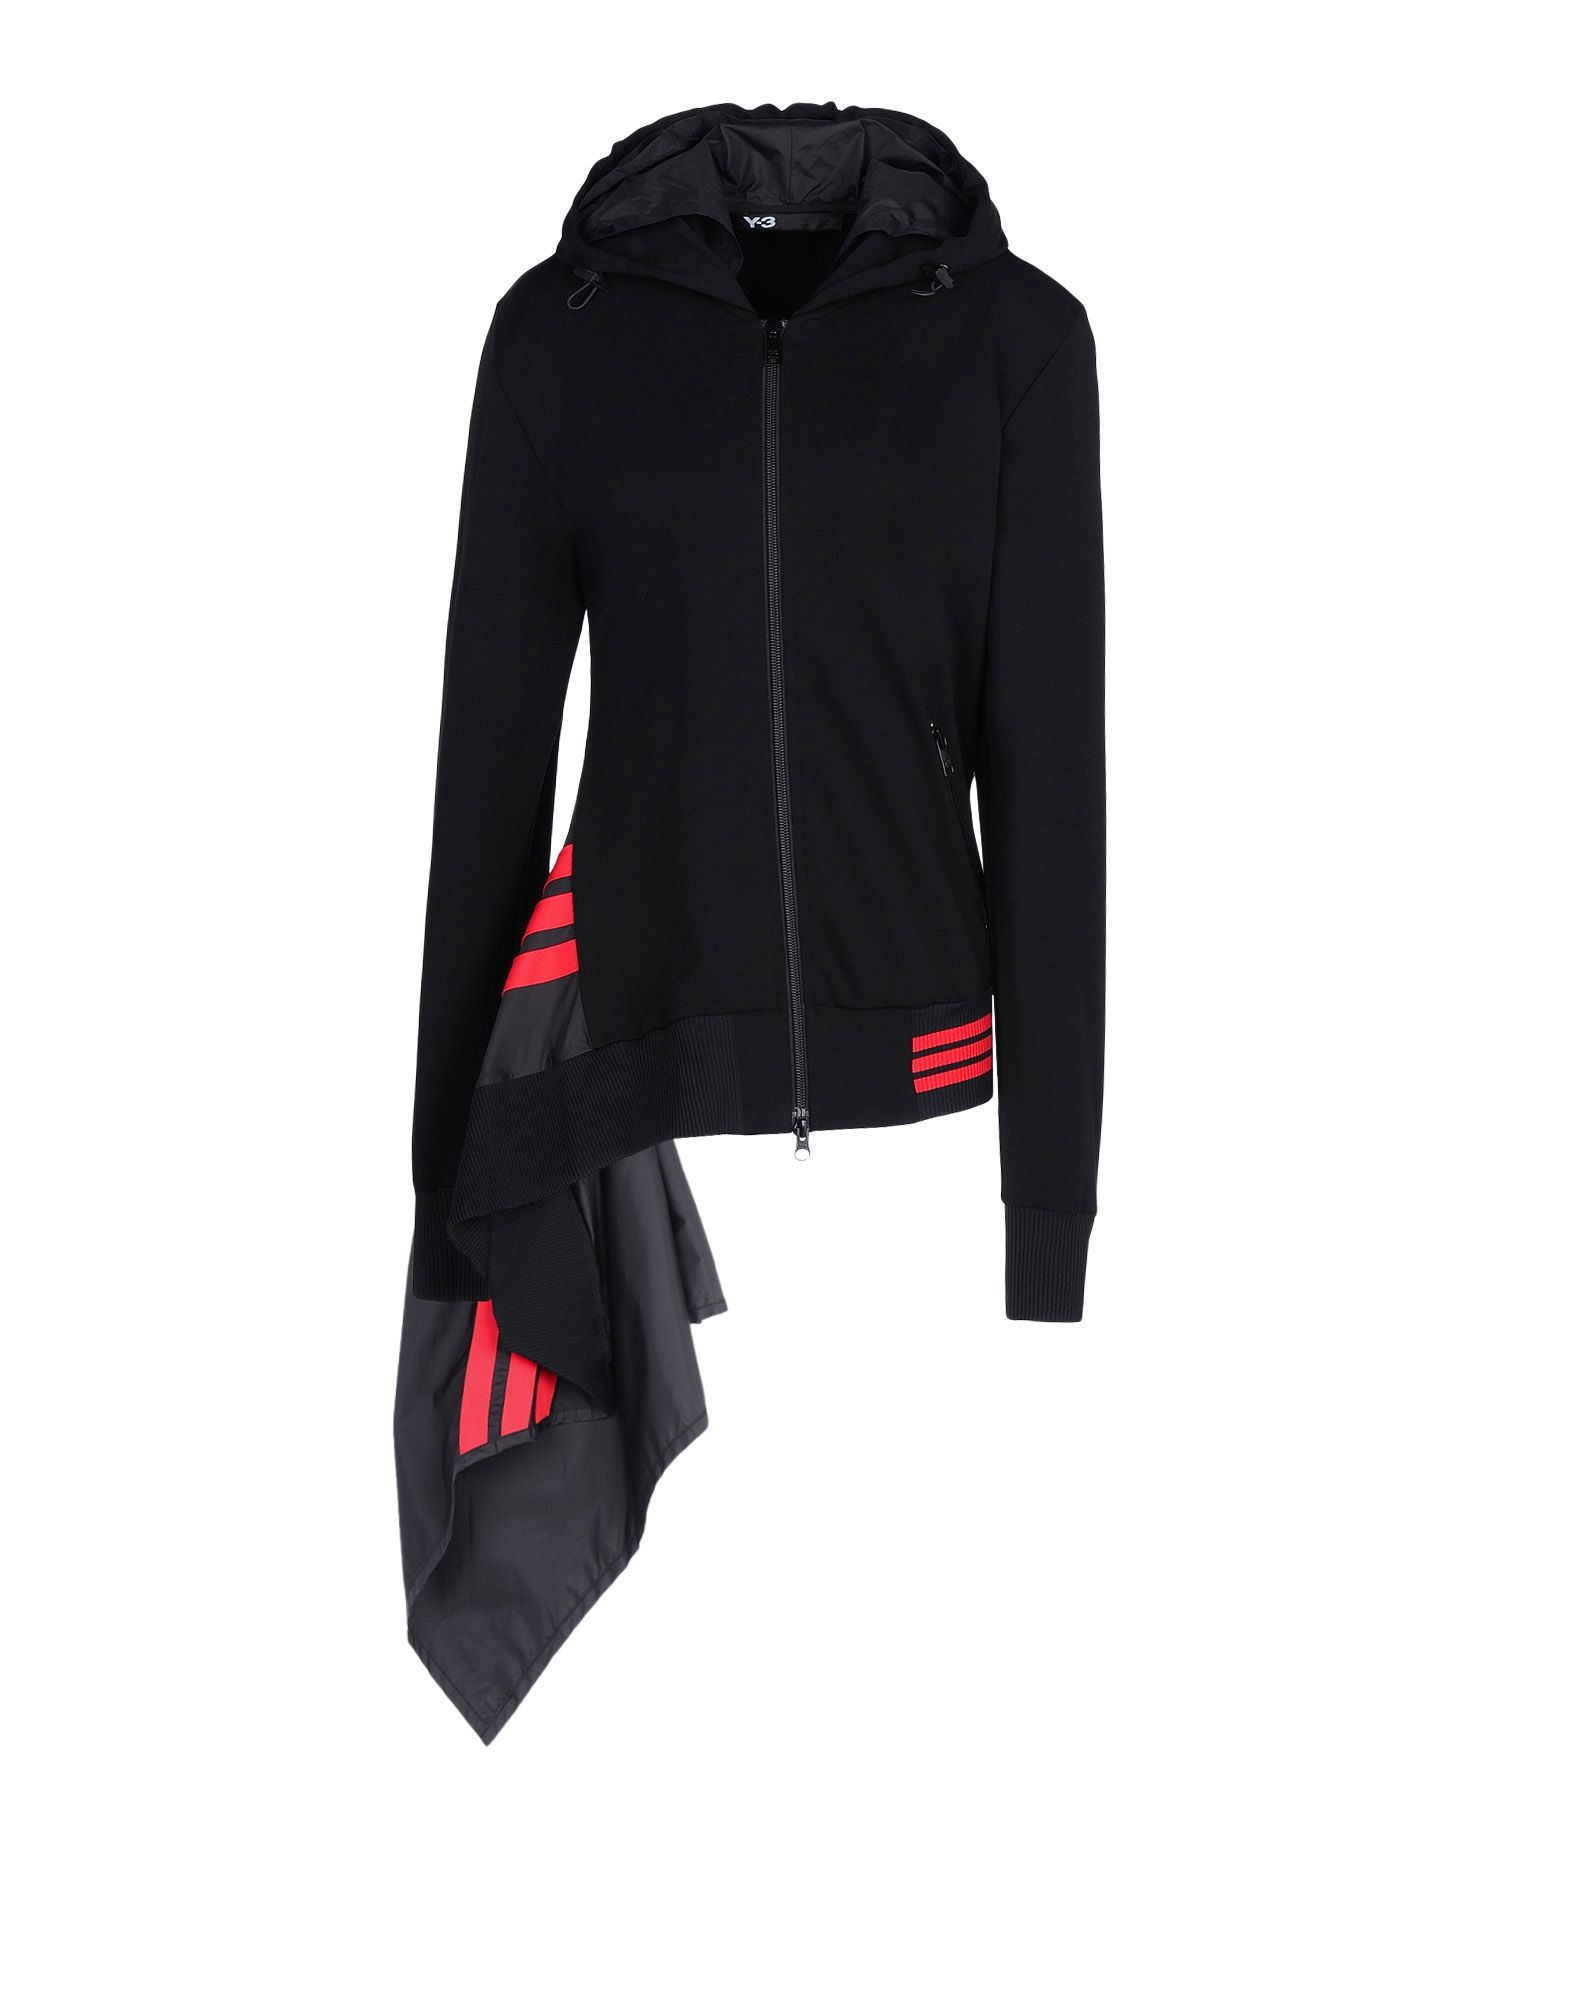 y 3 energy blouson for women adidas y 3 official store. Black Bedroom Furniture Sets. Home Design Ideas